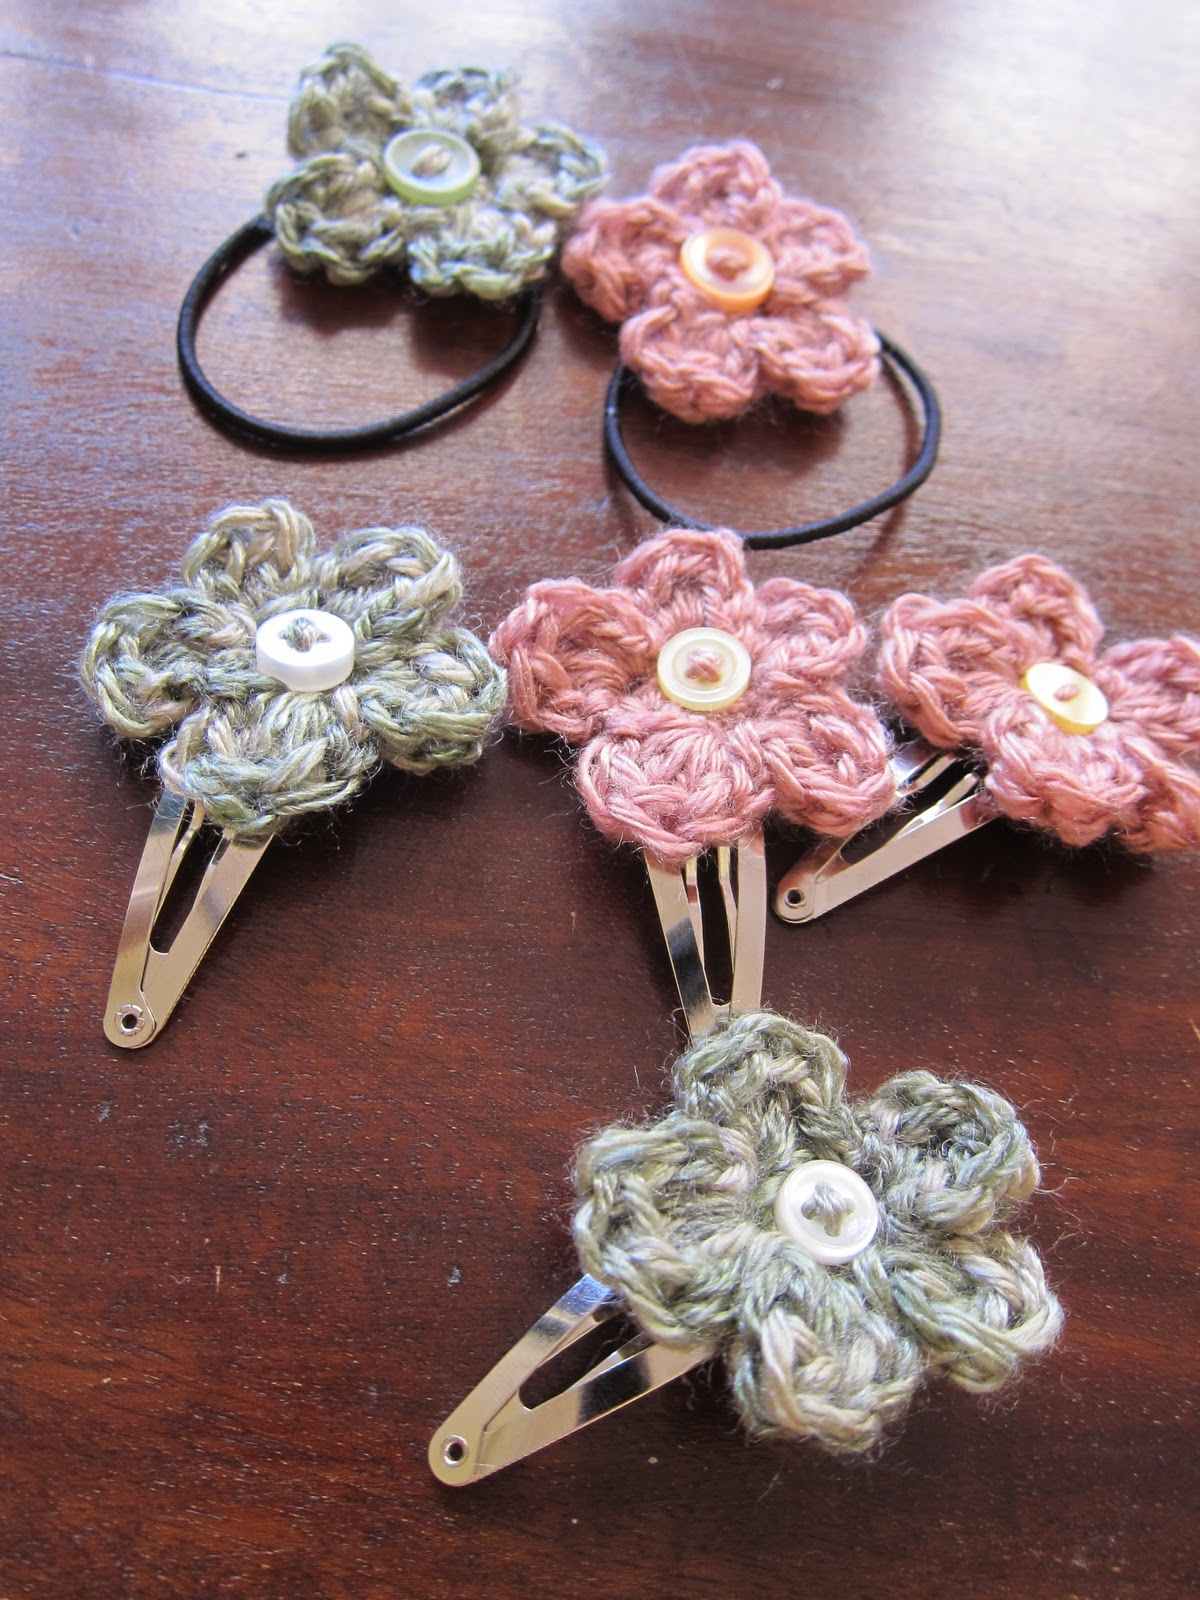 Crochet Hair Accessories Free Patterns - Crochet Patterns Books